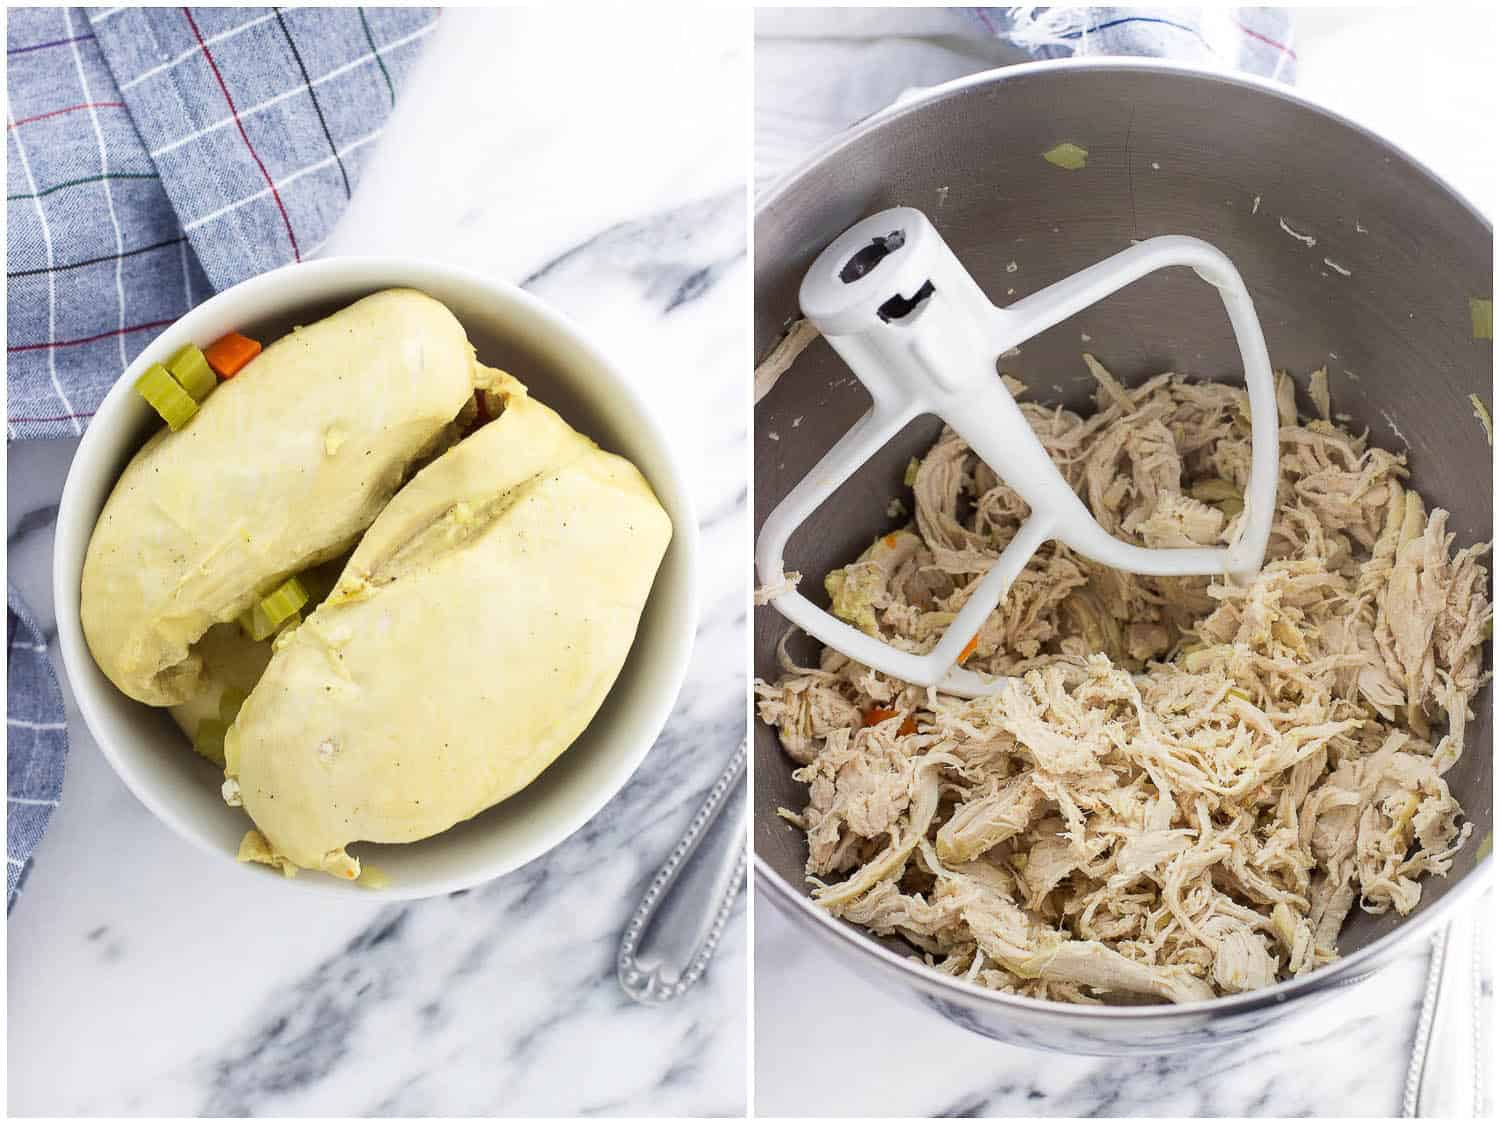 A photo collage of a bowl of cooked chicken breasts (left) and shredded chicken breasts with the stand mixer paddle attachment in a metal bowl (right)